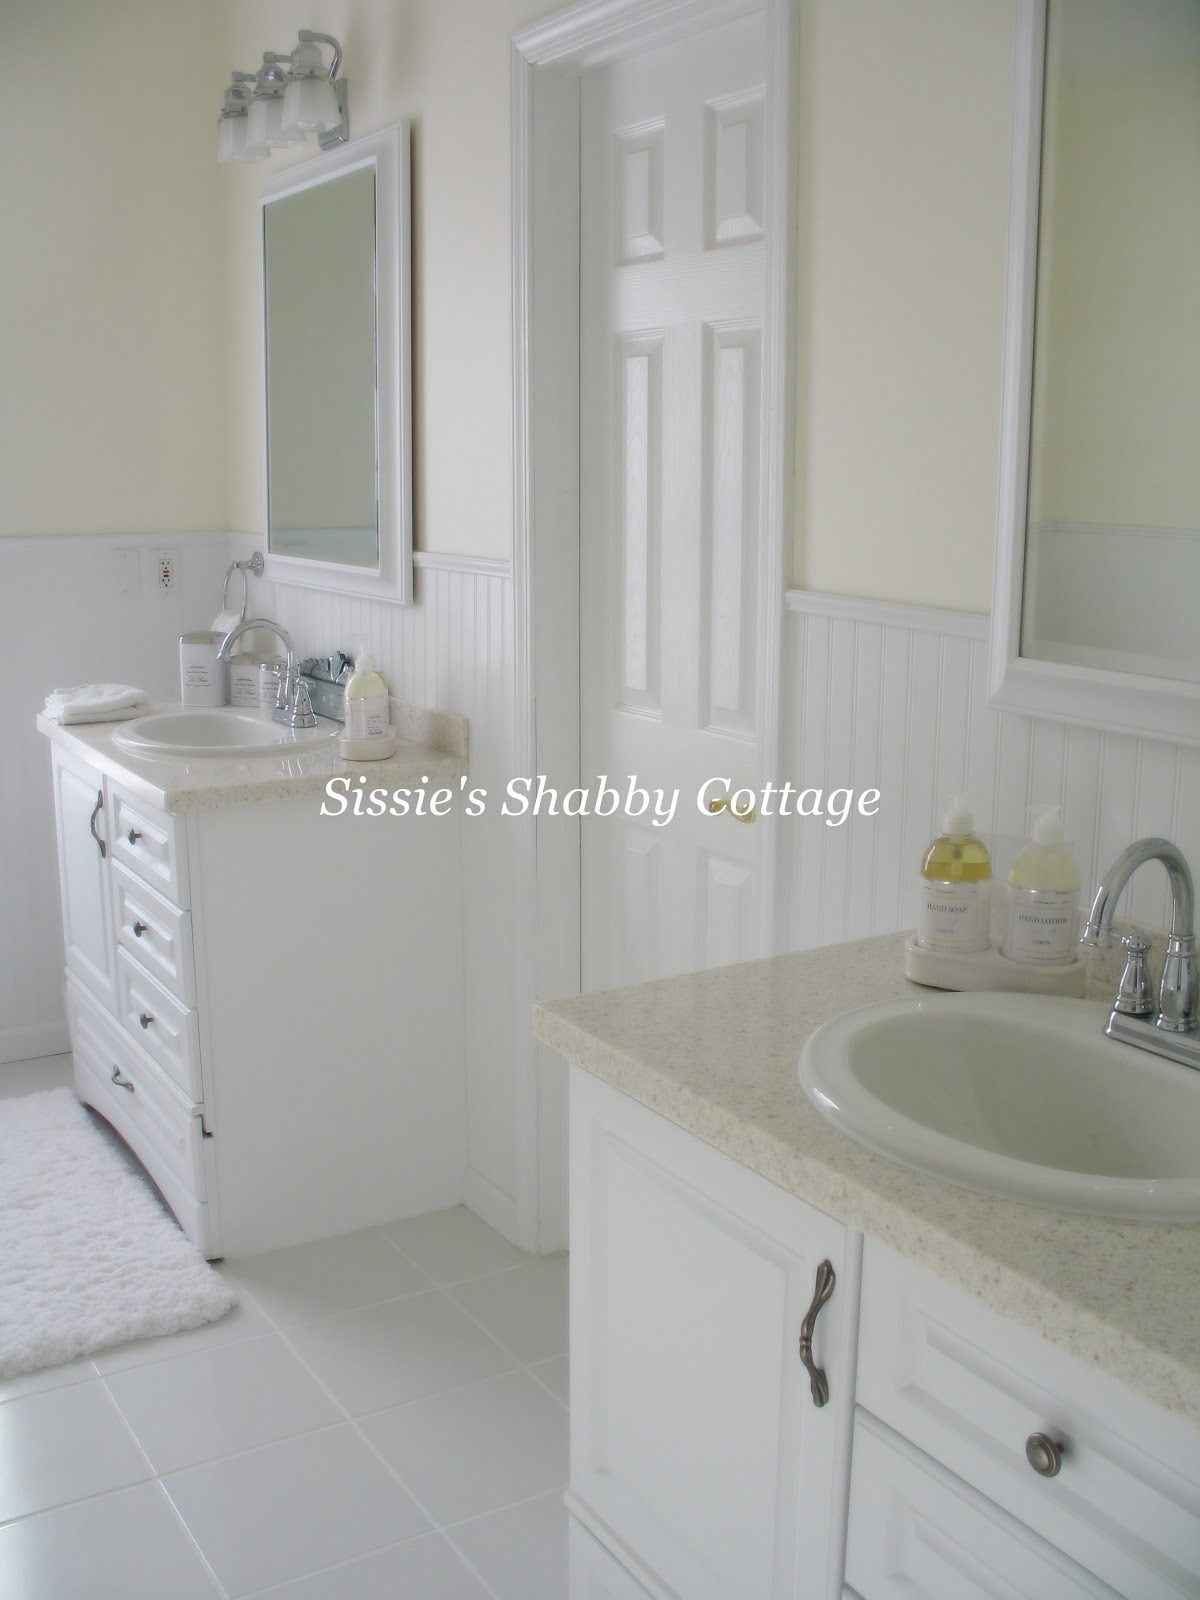 Sissie 39 s shabby cottage bathroom remodel before and after for Show me remodeled bathrooms